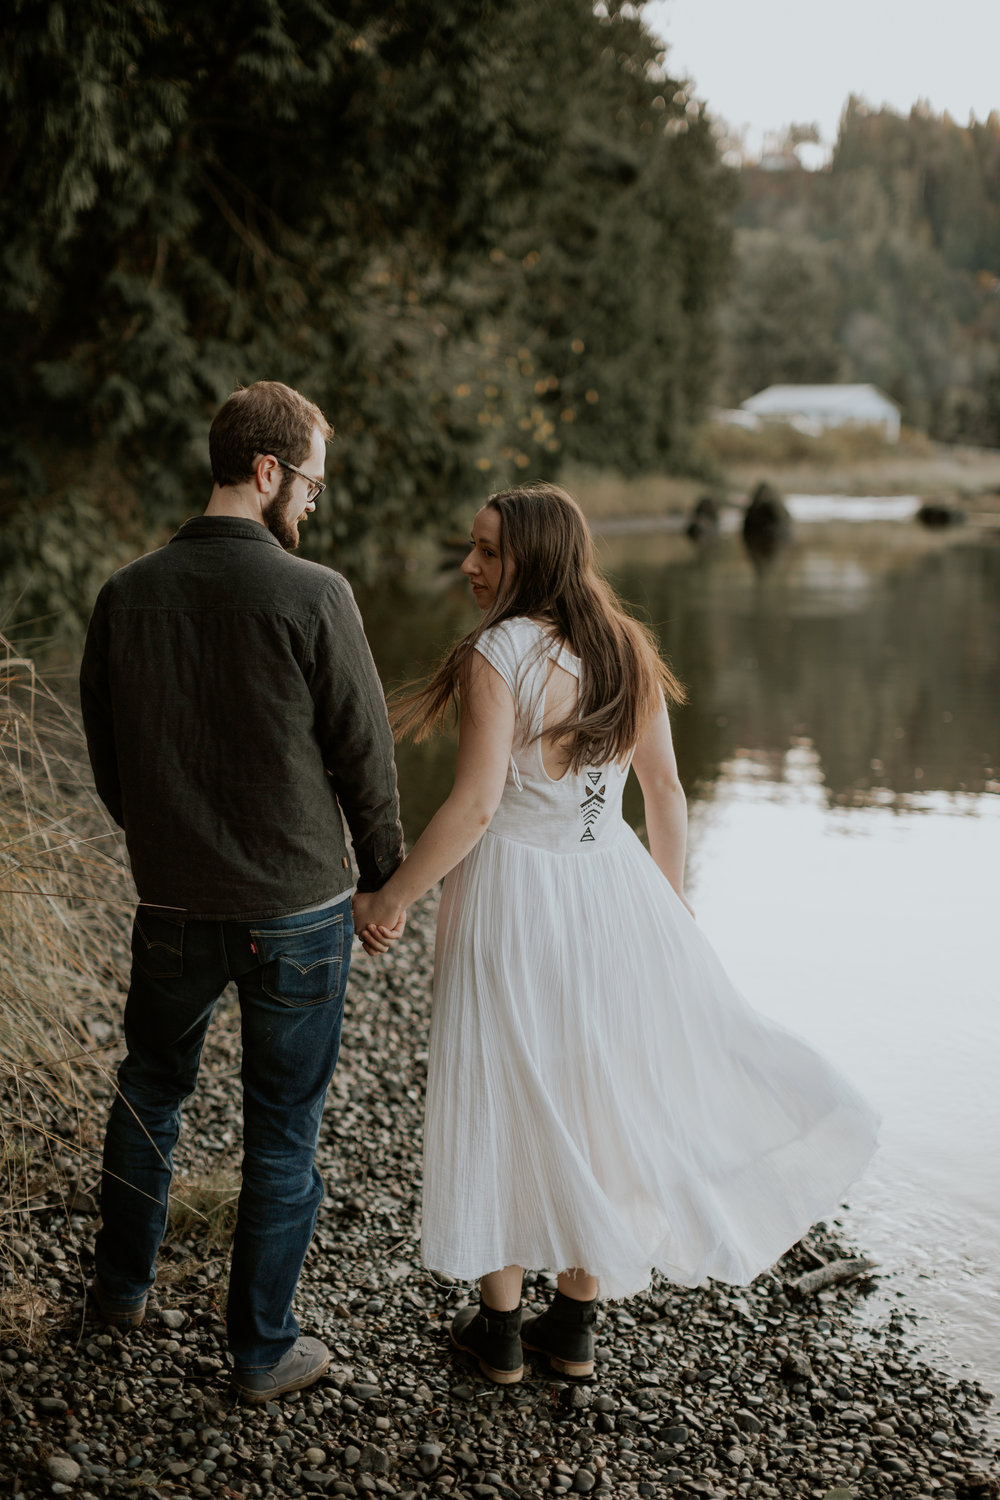 PNW-Olympic National Park-Salt Creek-engagement-Portrait-Port-Angeles-Washington-elopement-photographer-kayla-dawn-photography-kayladawnphoto-wedding-anniversary-photoshoot-olympic-peninsula-197.jpg